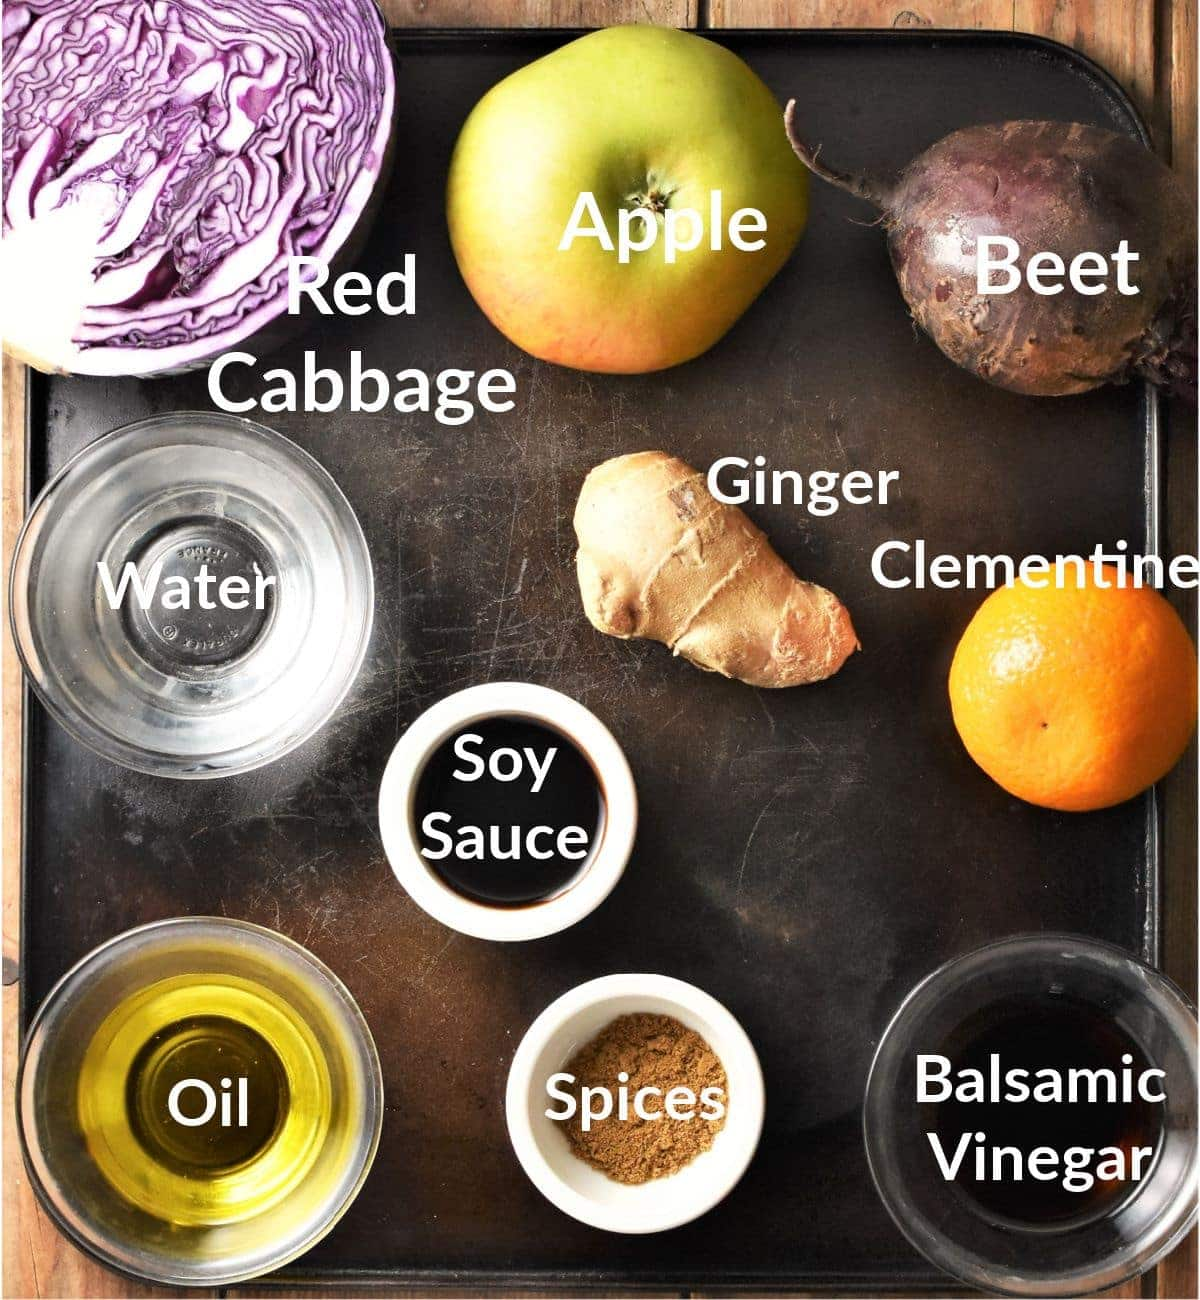 Ingredients for braised red cabbage in individual dishes.